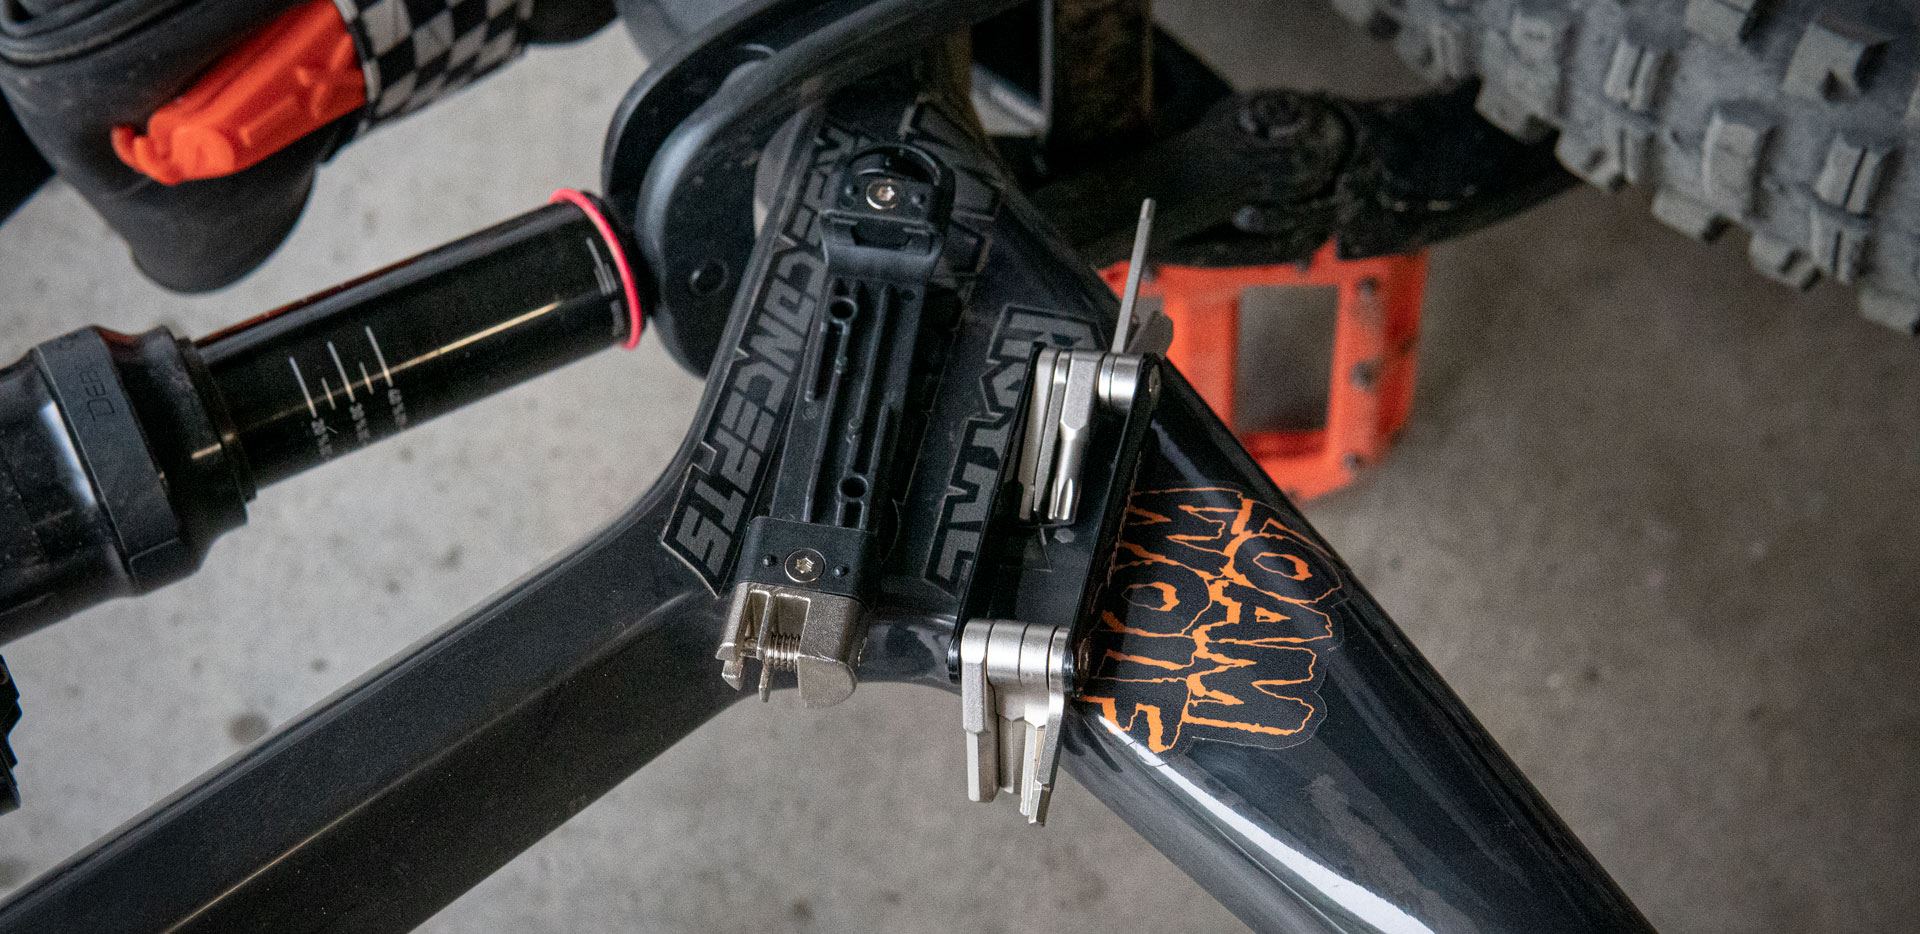 Bontrager BITS Integrated Tool Review